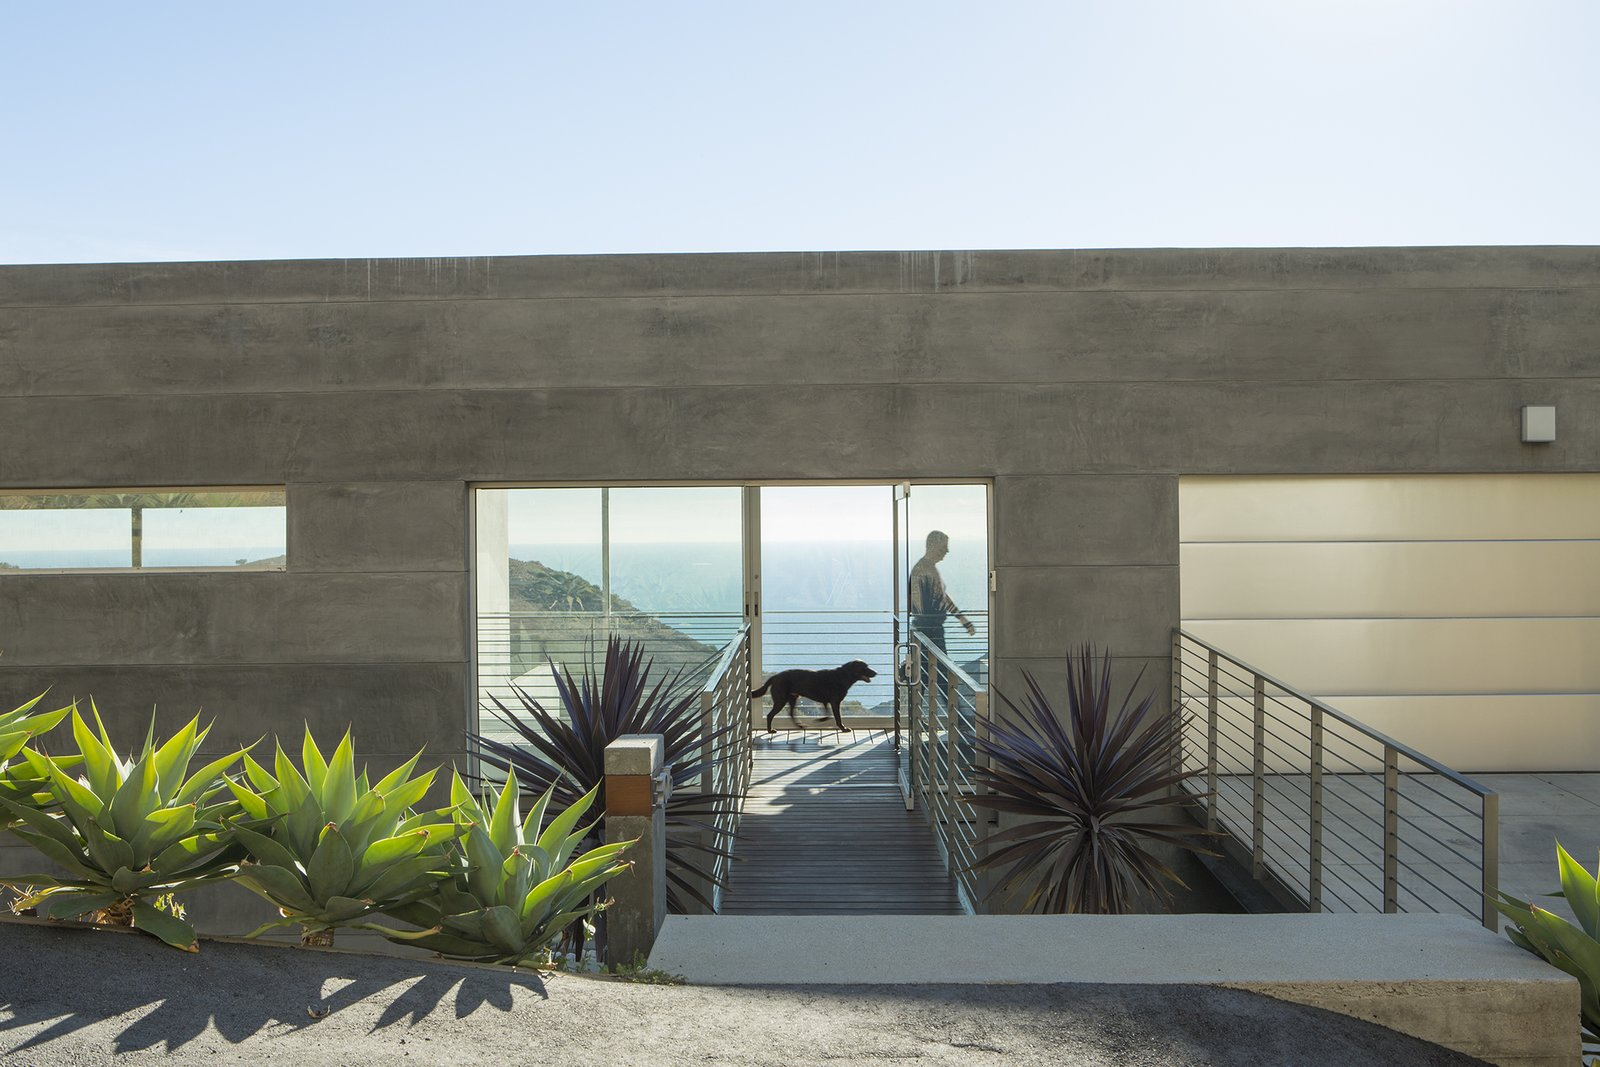 """Exterior, House Building Type, Flat RoofLine, and Concrete Siding Material """"Simple rectangular  volumes with simple details"""" is how designer Thomas Egidi describes the house he created for architect Carlos Dell'Acqua in Malibu. """"I wanted to stress its horizontality,"""" Dell'Acqua notes. Inside the dwelling, which is entered via a bridge that pierces the 25-foot-high main facade, the view  opens up to a panorama of mountains and sea. Ipe flooring is used for the walkway and throughout the interior.  Photos from Facing the Elements"""